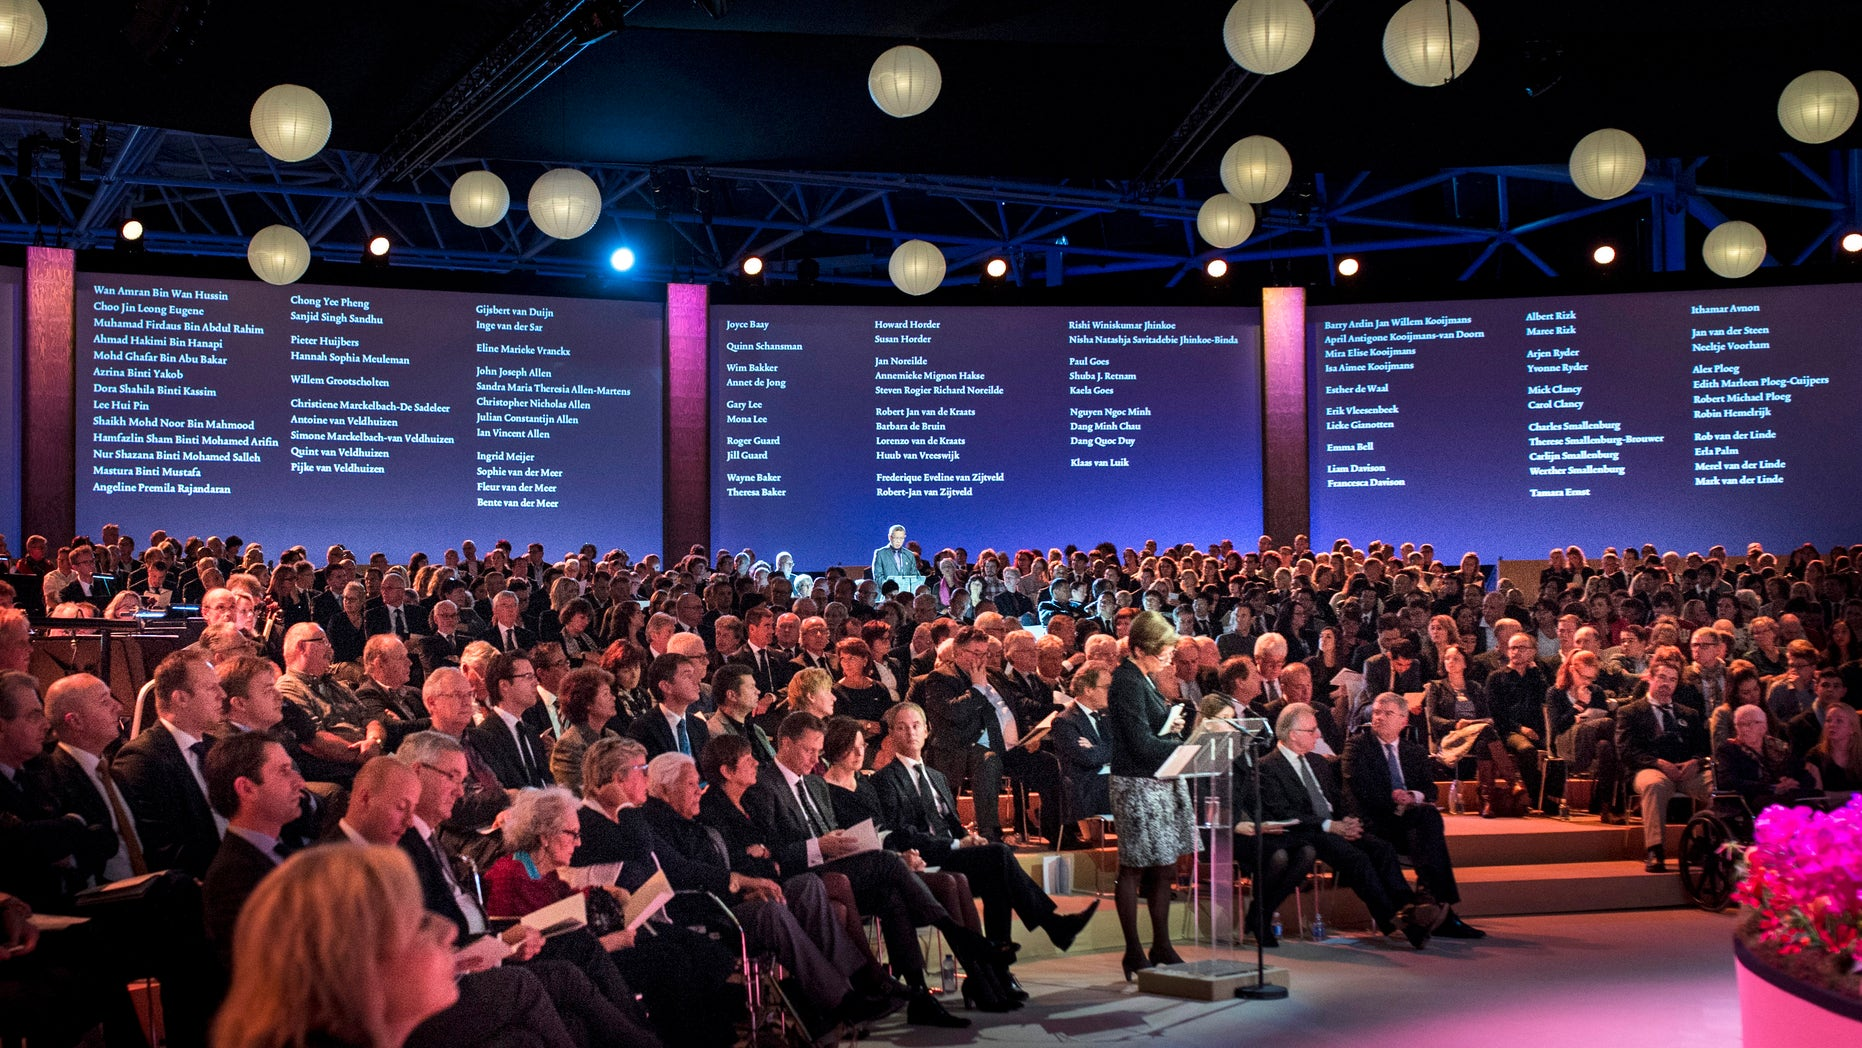 Nov. 10, 2014 - A relative reads out names of victims in front of screens listing those who died, during a commemoration ceremony at RAI in Amsterdam, Netherlands, for loved ones of victims of the Malaysia Airlines Flight 17 disaster. Hundreds gathered for the ceremony, nearly 4 months after the passenger jet was downed over eastern Ukraine killing all 298 people on board.